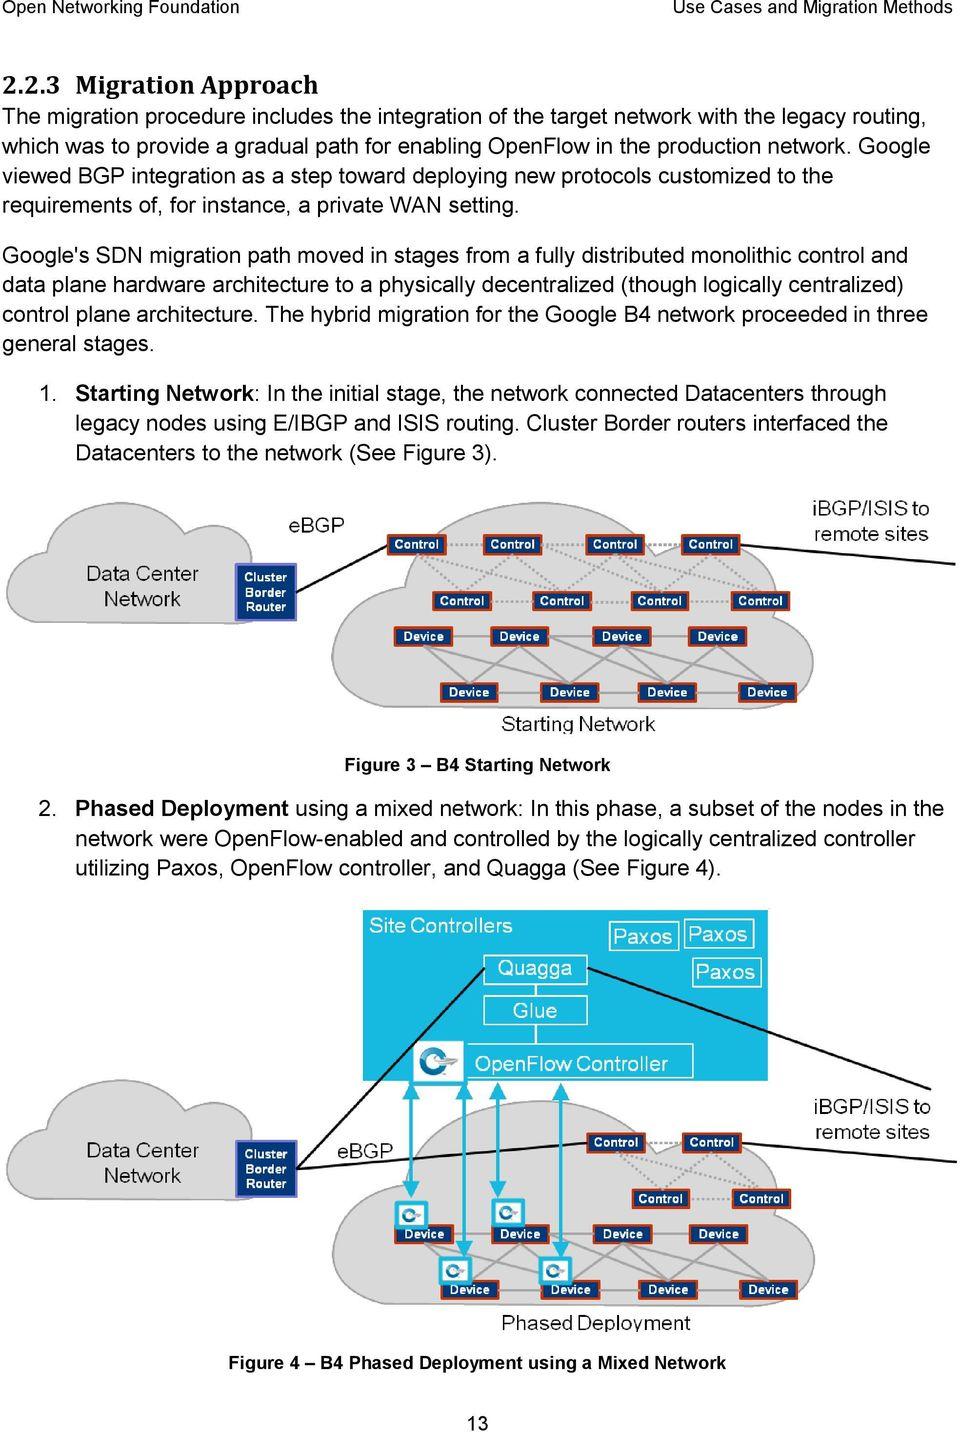 Google's SDN migration path moved in stages from a fully distributed monolithic control and data plane hardware architecture to a physically decentralized (though logically centralized) control plane